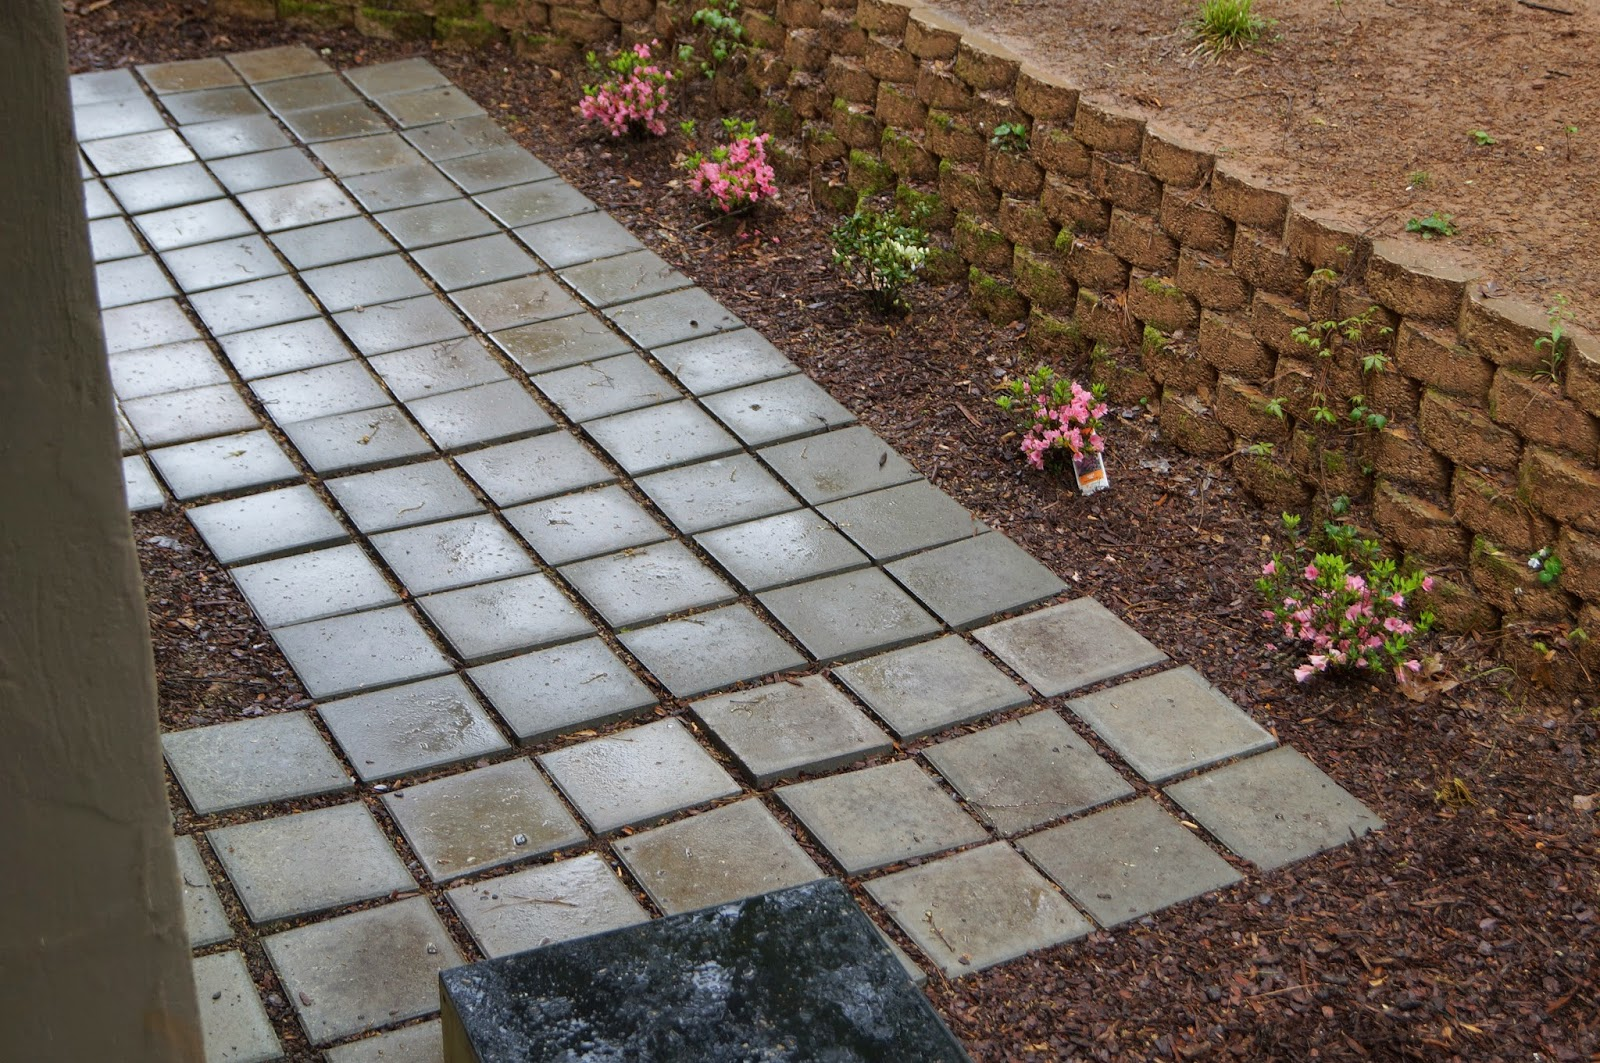 Home depot patio pavers patio design ideas - Paver designs for backyard ...